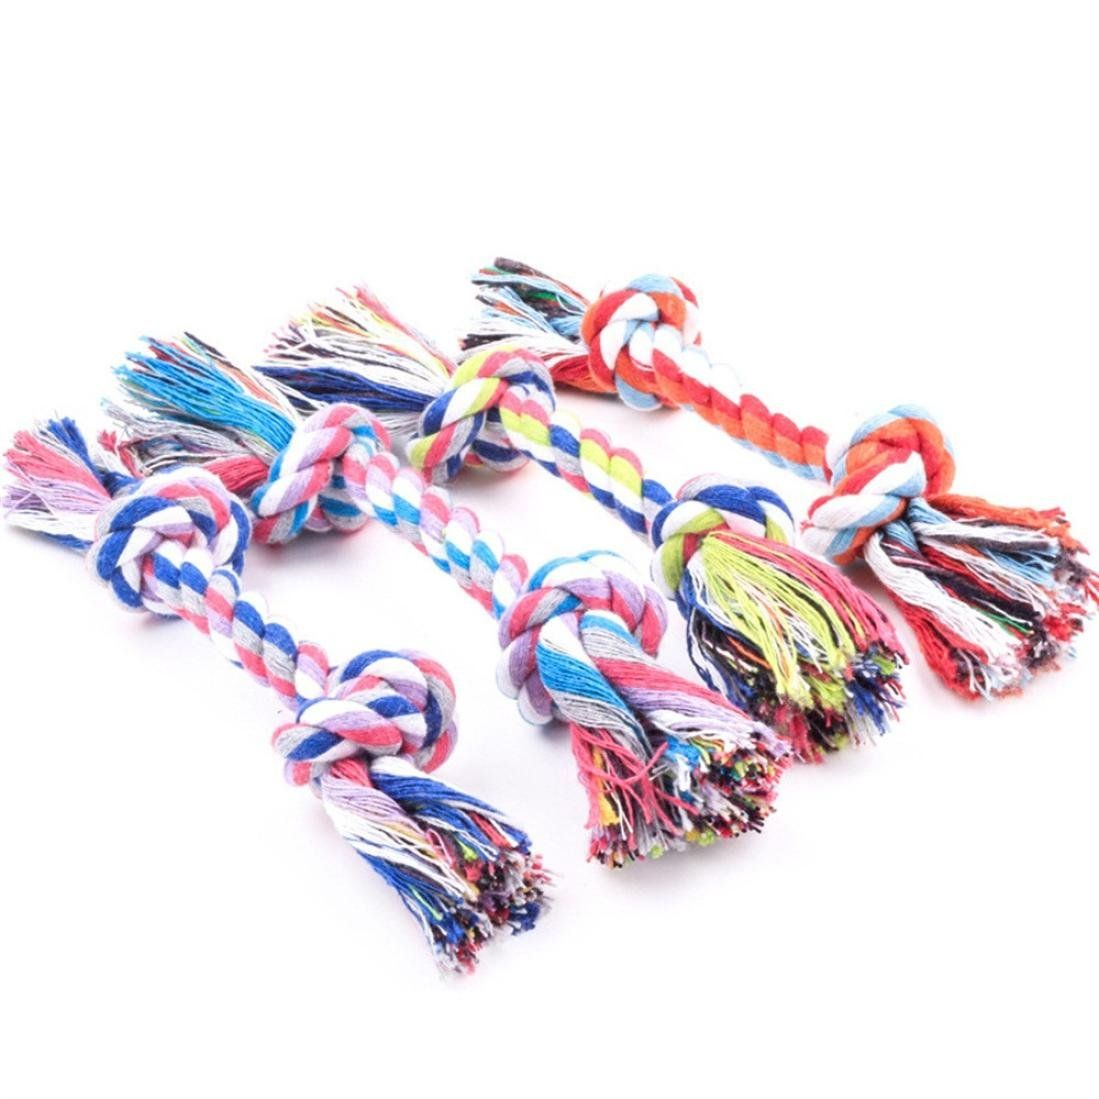 Toy Puppy Play Cotton Dog Tough Chew Tug Fun Pet With New Rope Knot Strong War